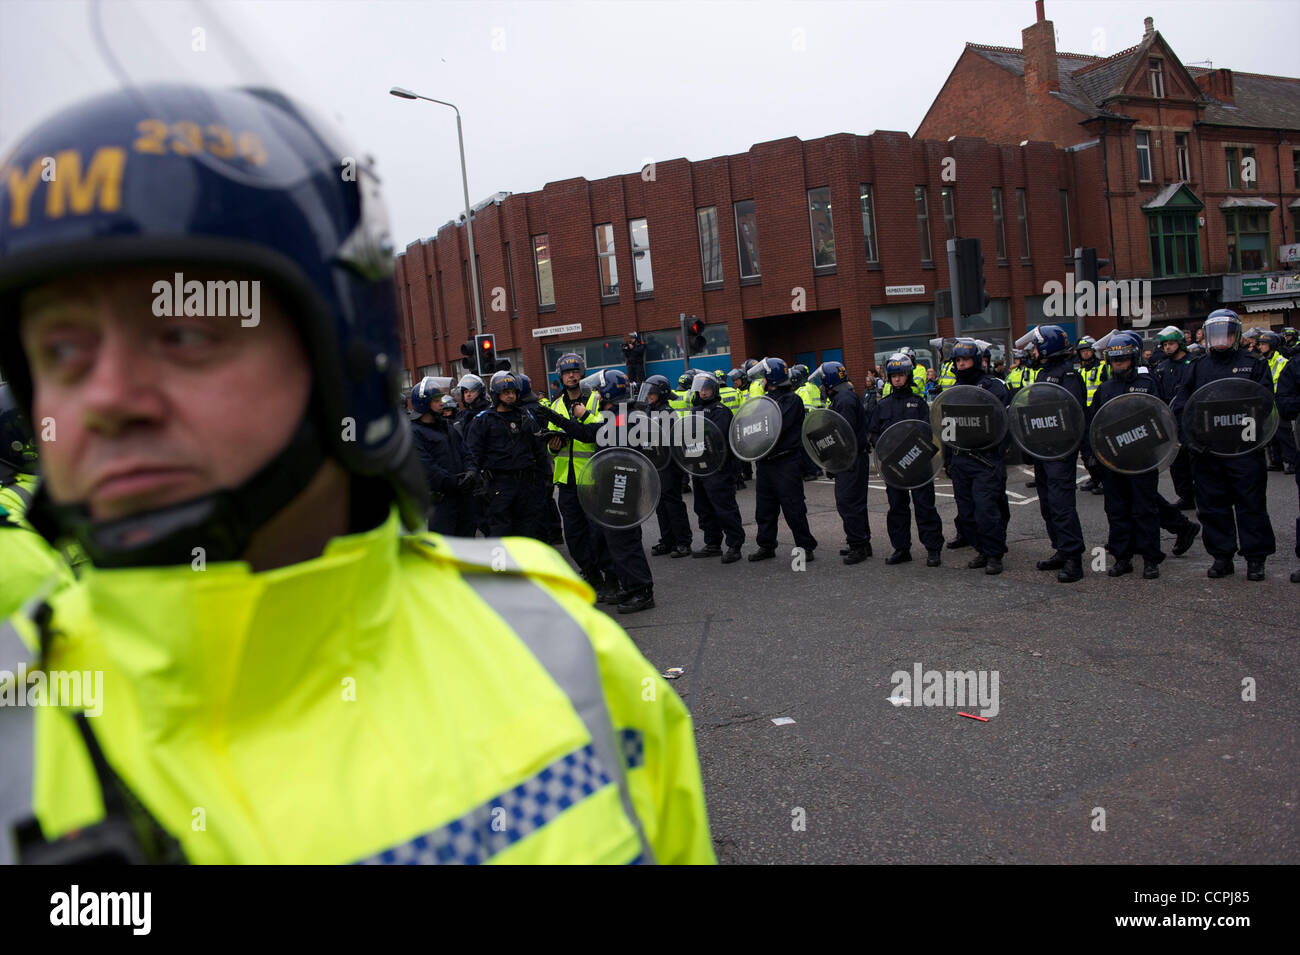 Oct 9, 2010 - Leicester, England, United Kingdom - A phalanx of police officers, numbering in excess of 1,400, equipped Stock Photo